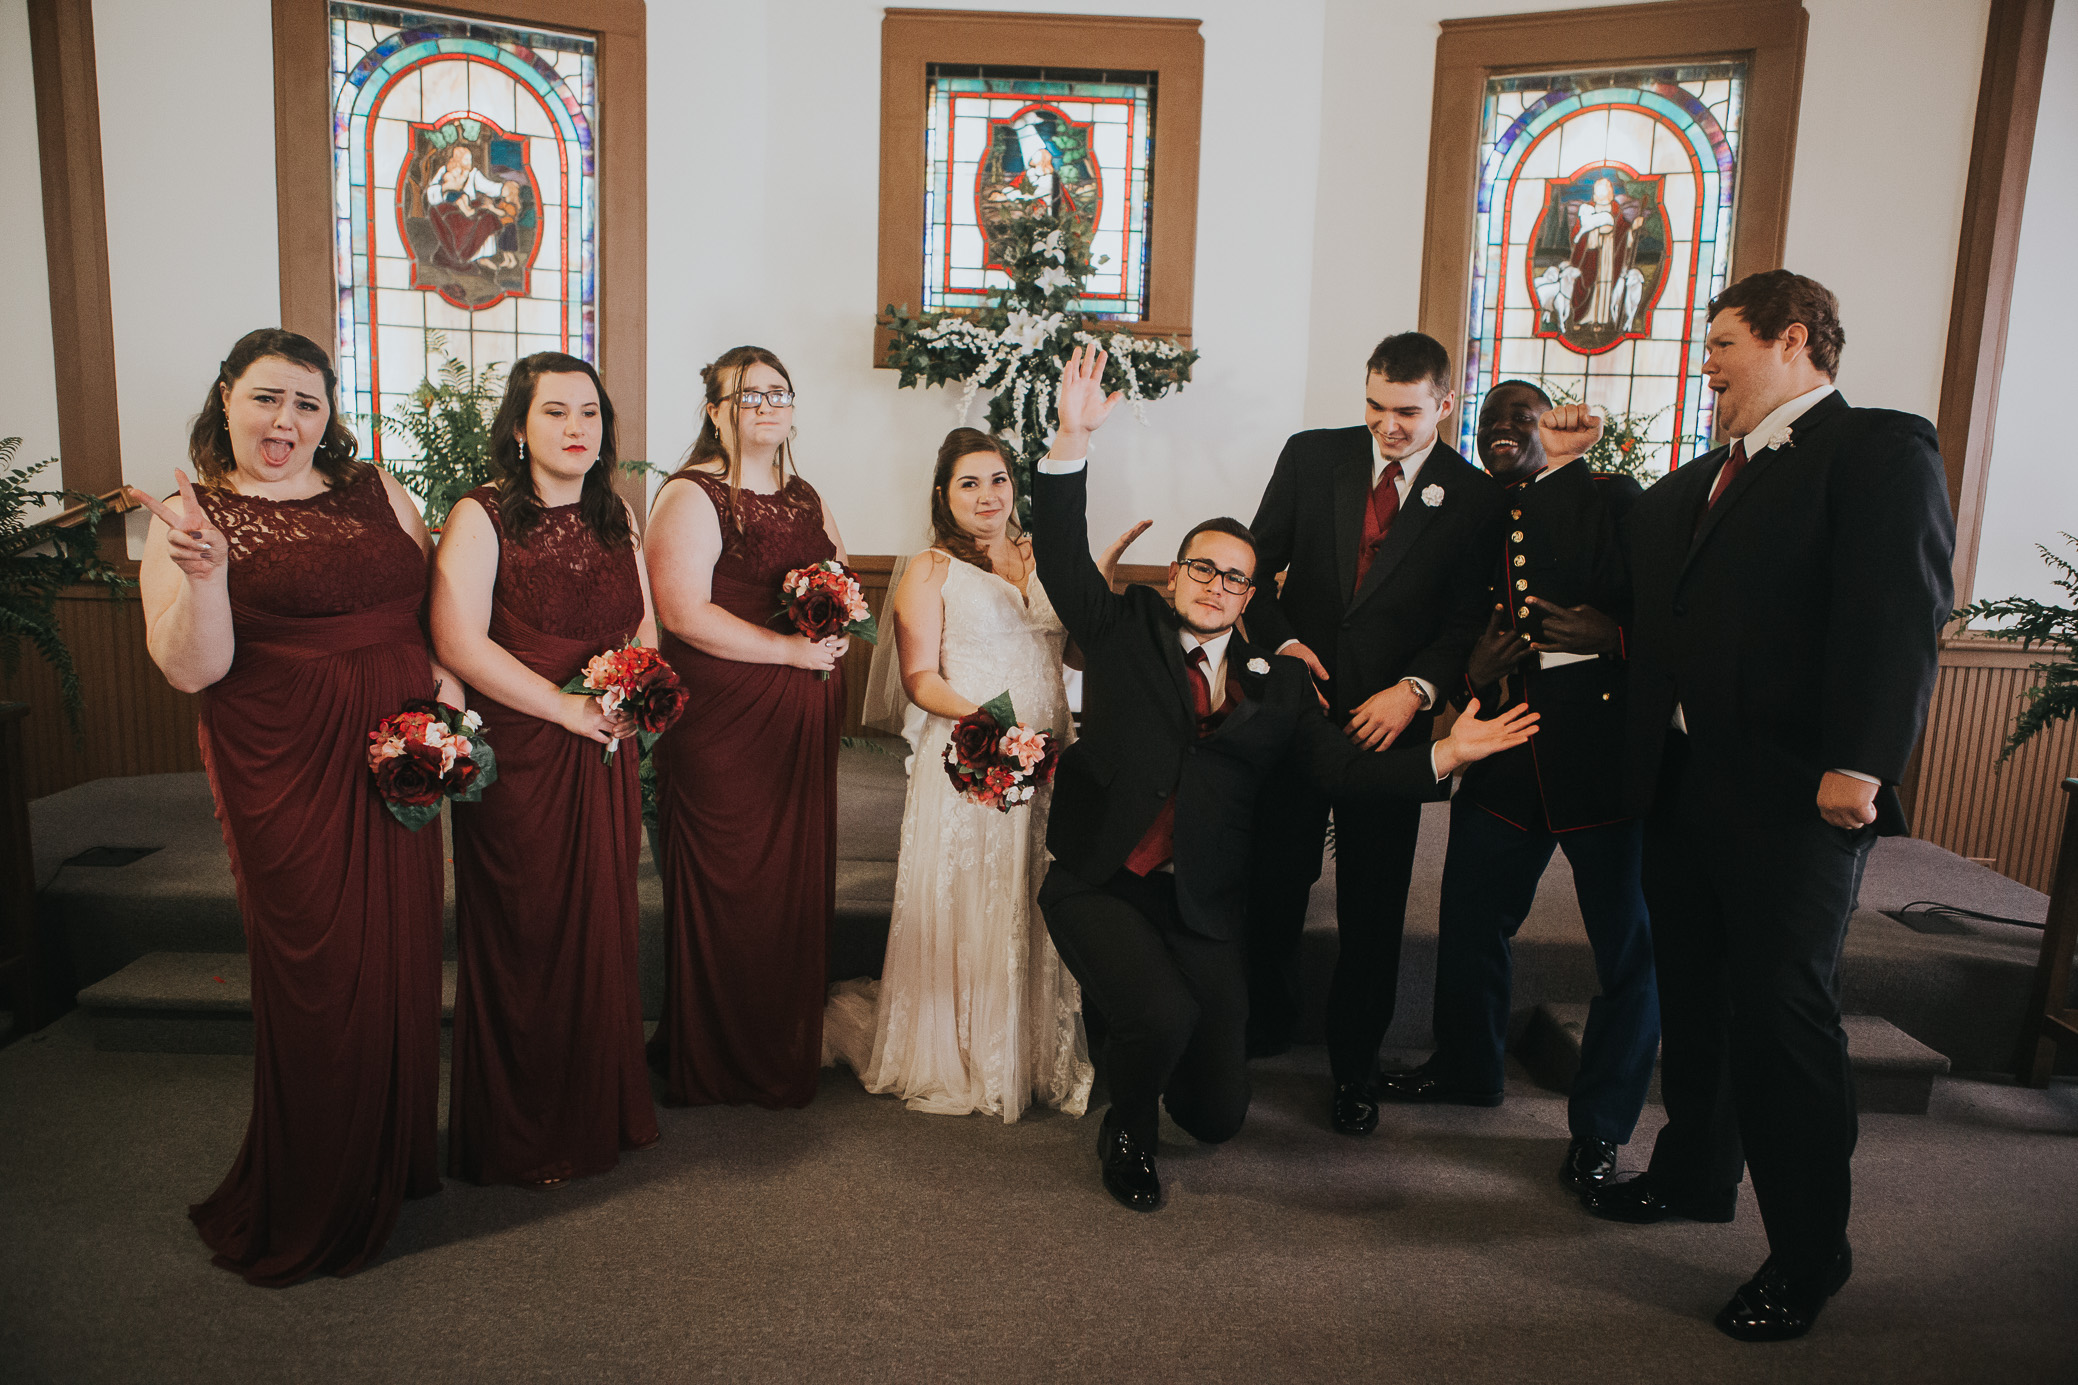 Alabama wedding photography at Odenville Presbyterian Church in Odenville, Alabama on November 10th, 2018 by David A. Smith of DSmithImages Wedding Photography, Portraits, and Events in the Birmingham, Alabama area.